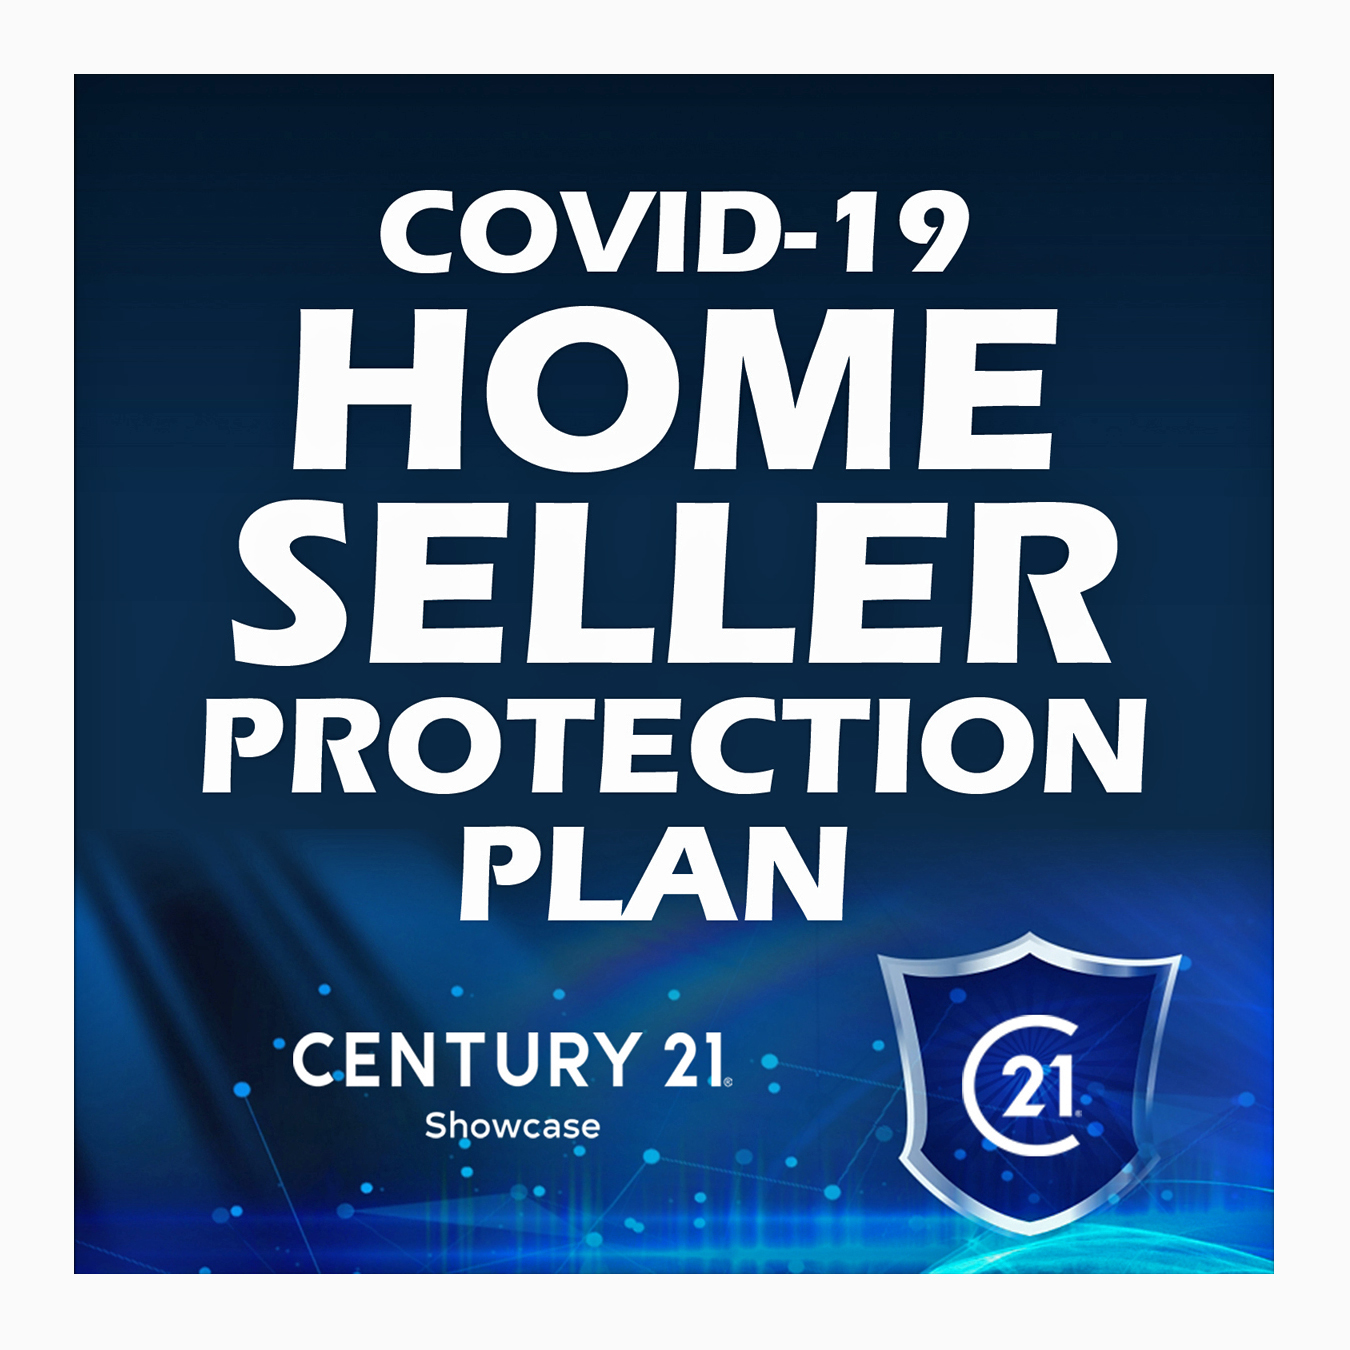 Home seller protestion covid19.jpg